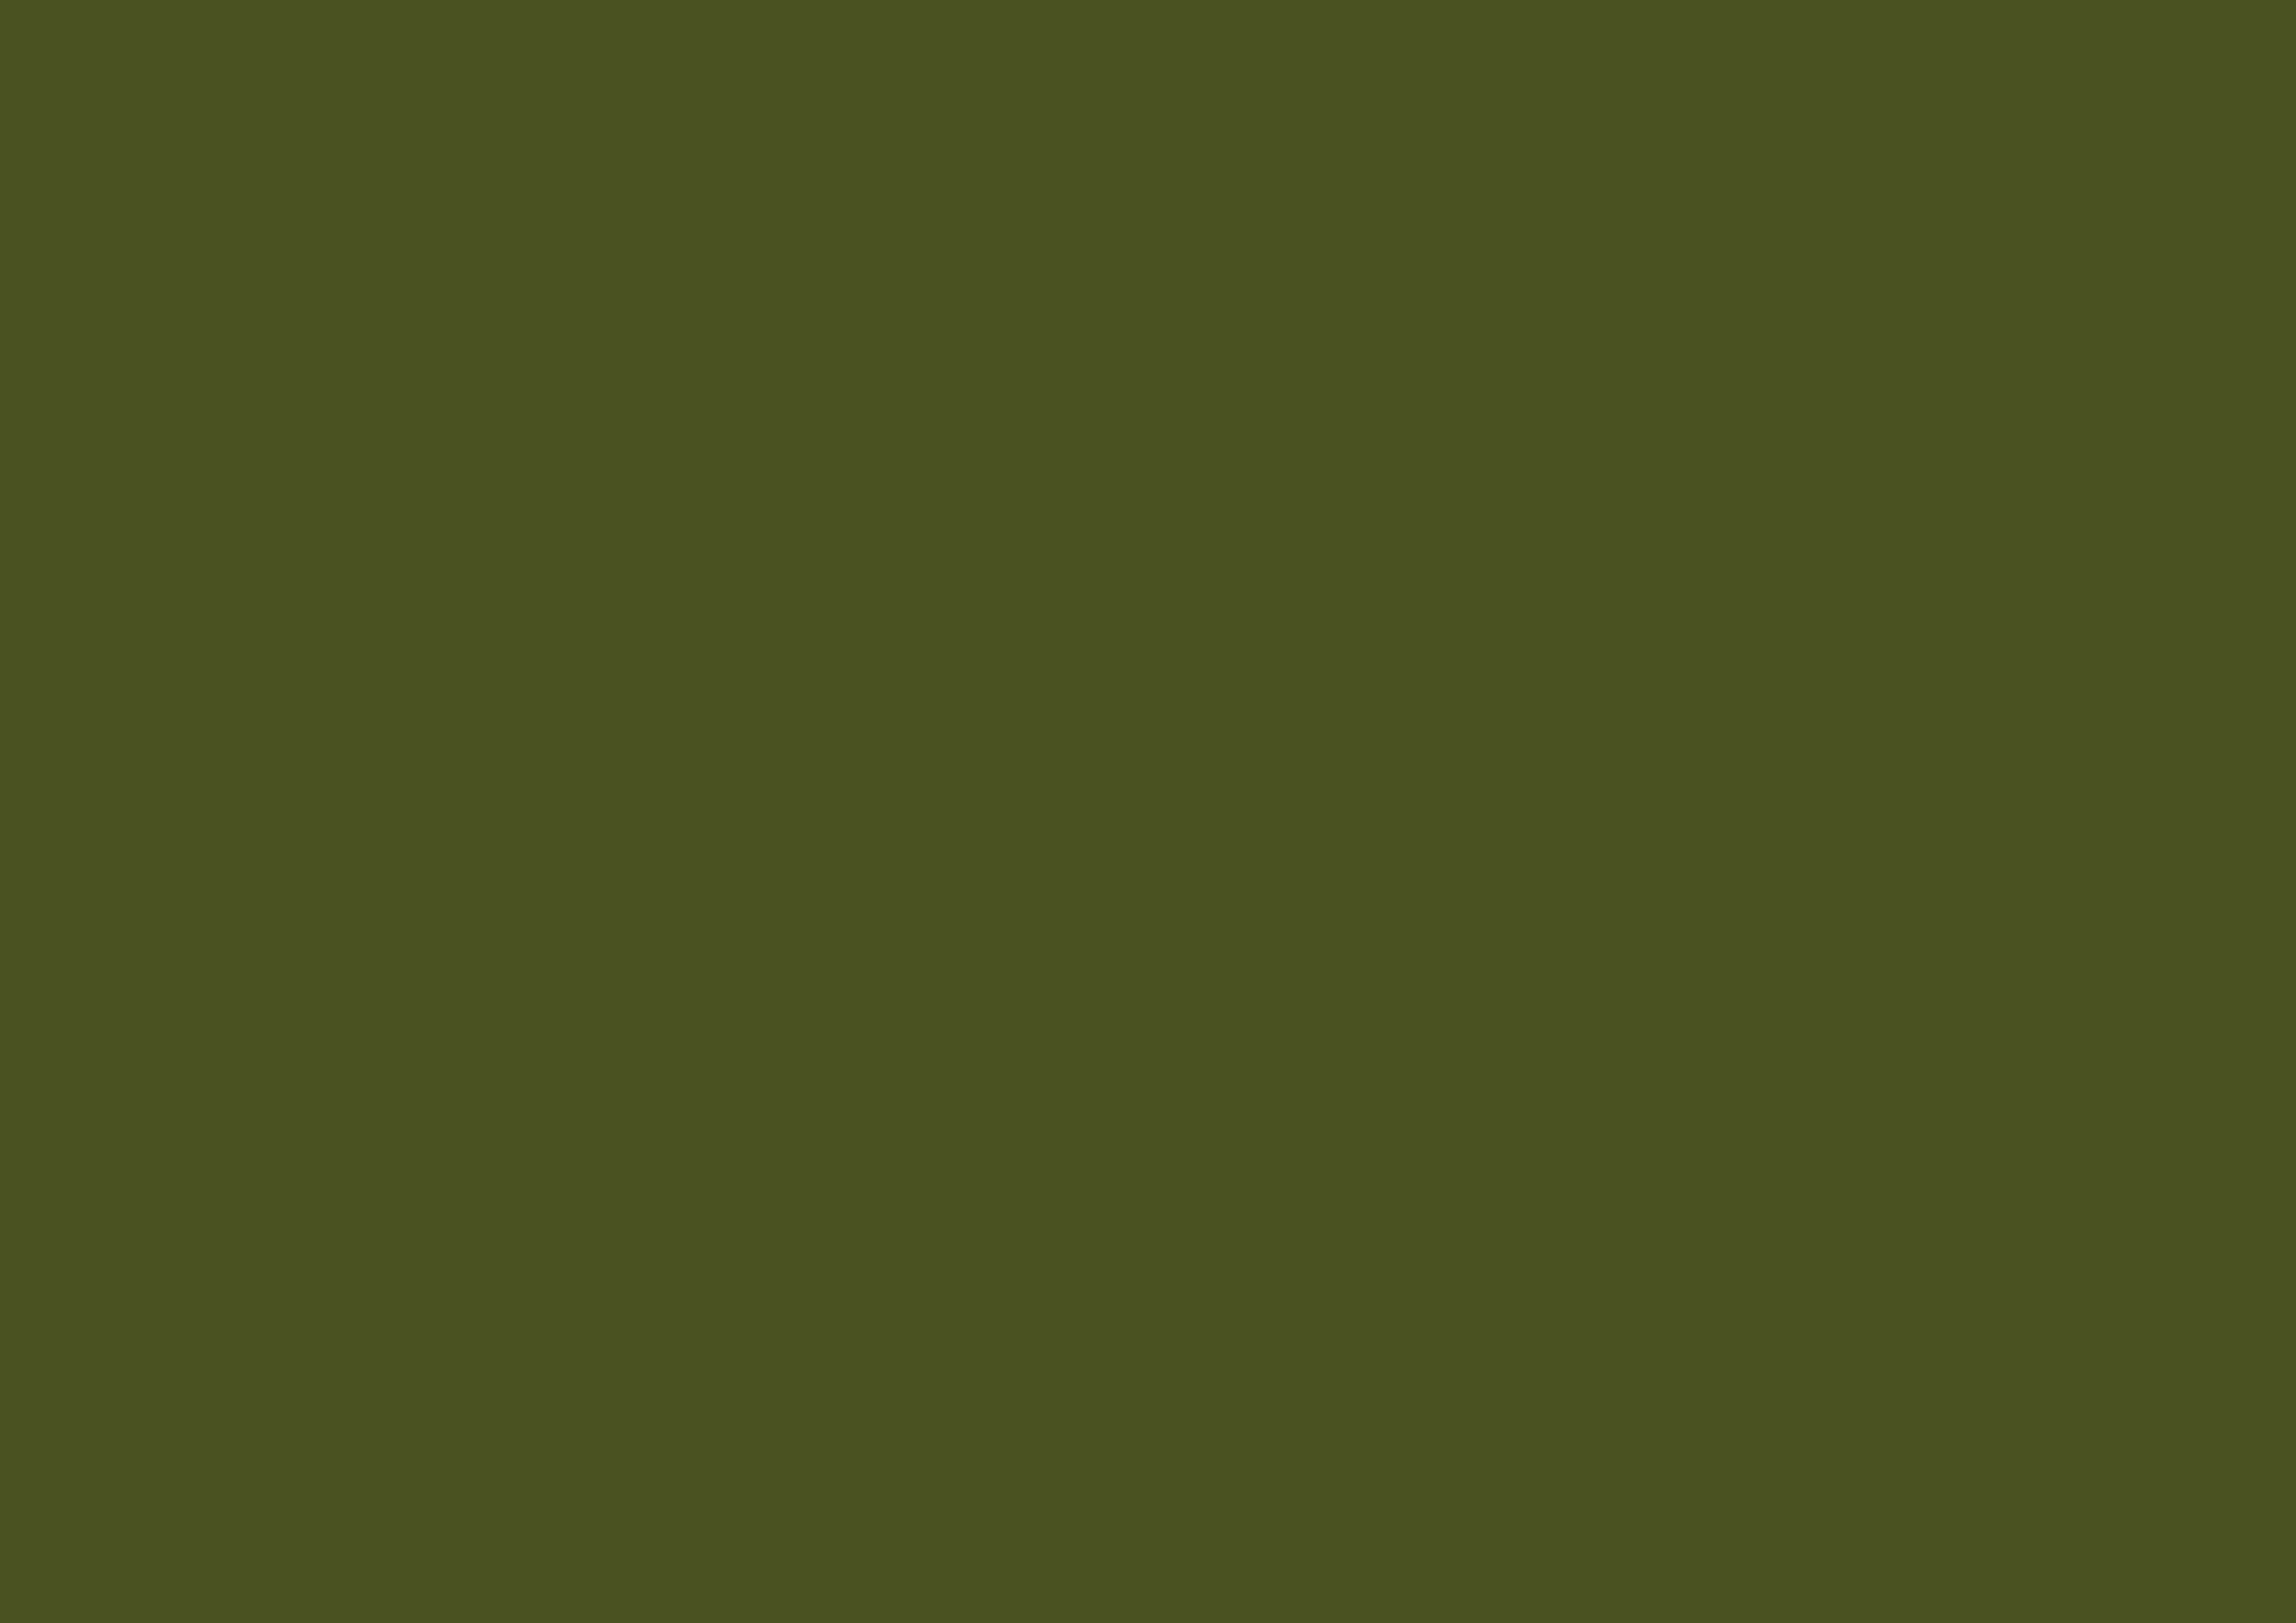 3508x2480 Army Green Solid Color Background 3508x2480